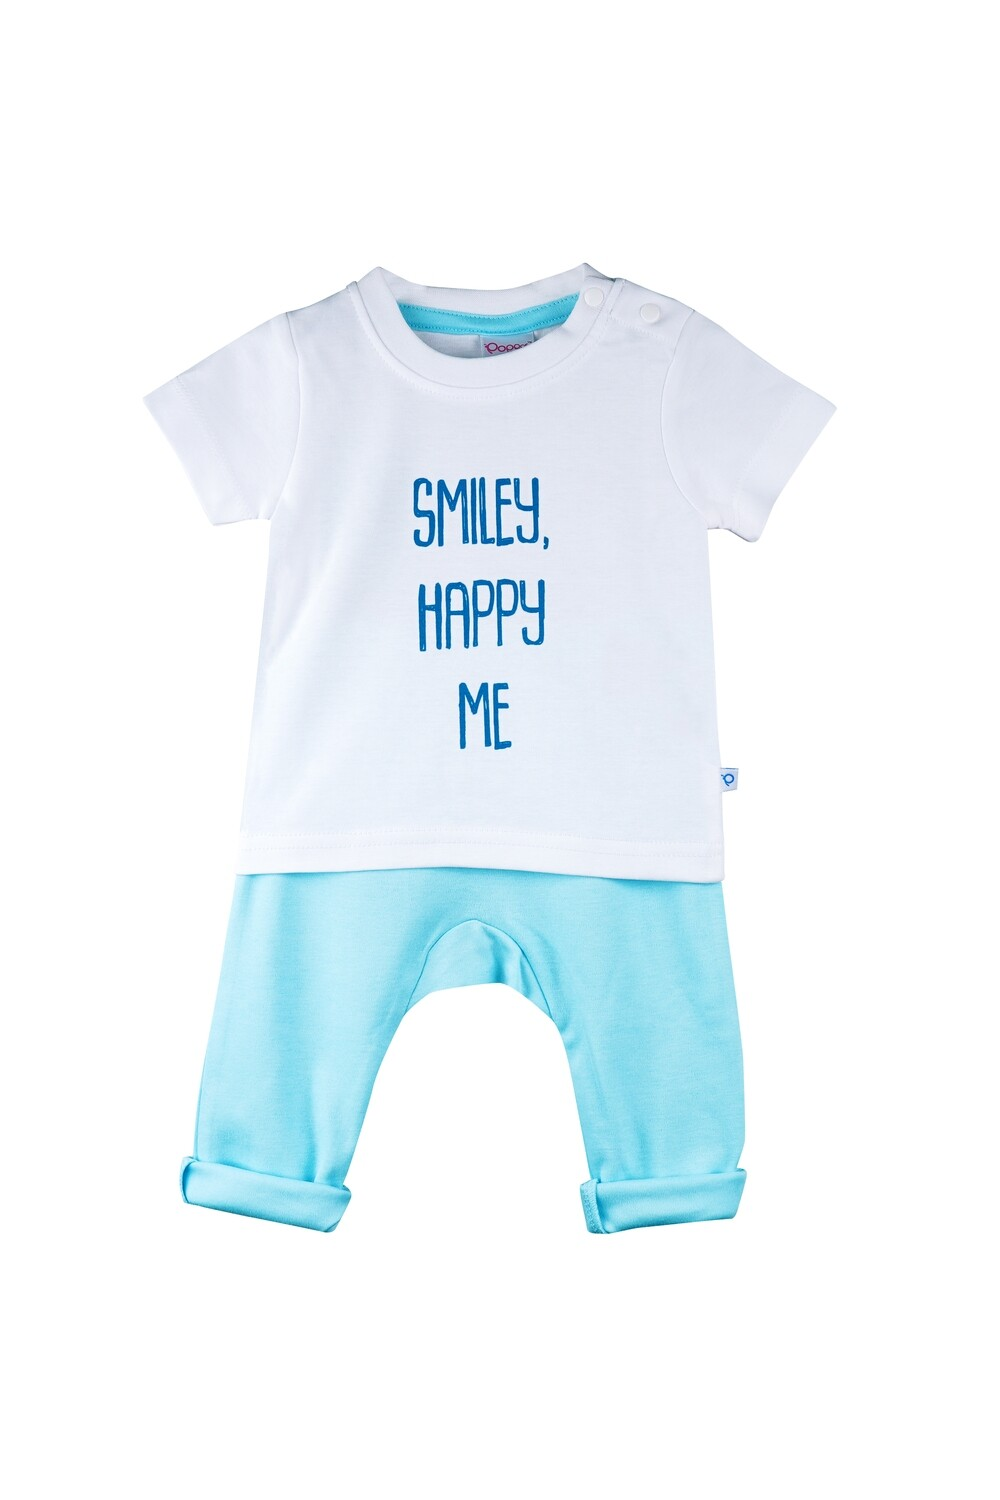 Boon Sky Blue Round Neck Half Sleeve Printed T-Shirt with Lounge Pant & Booties for Boys